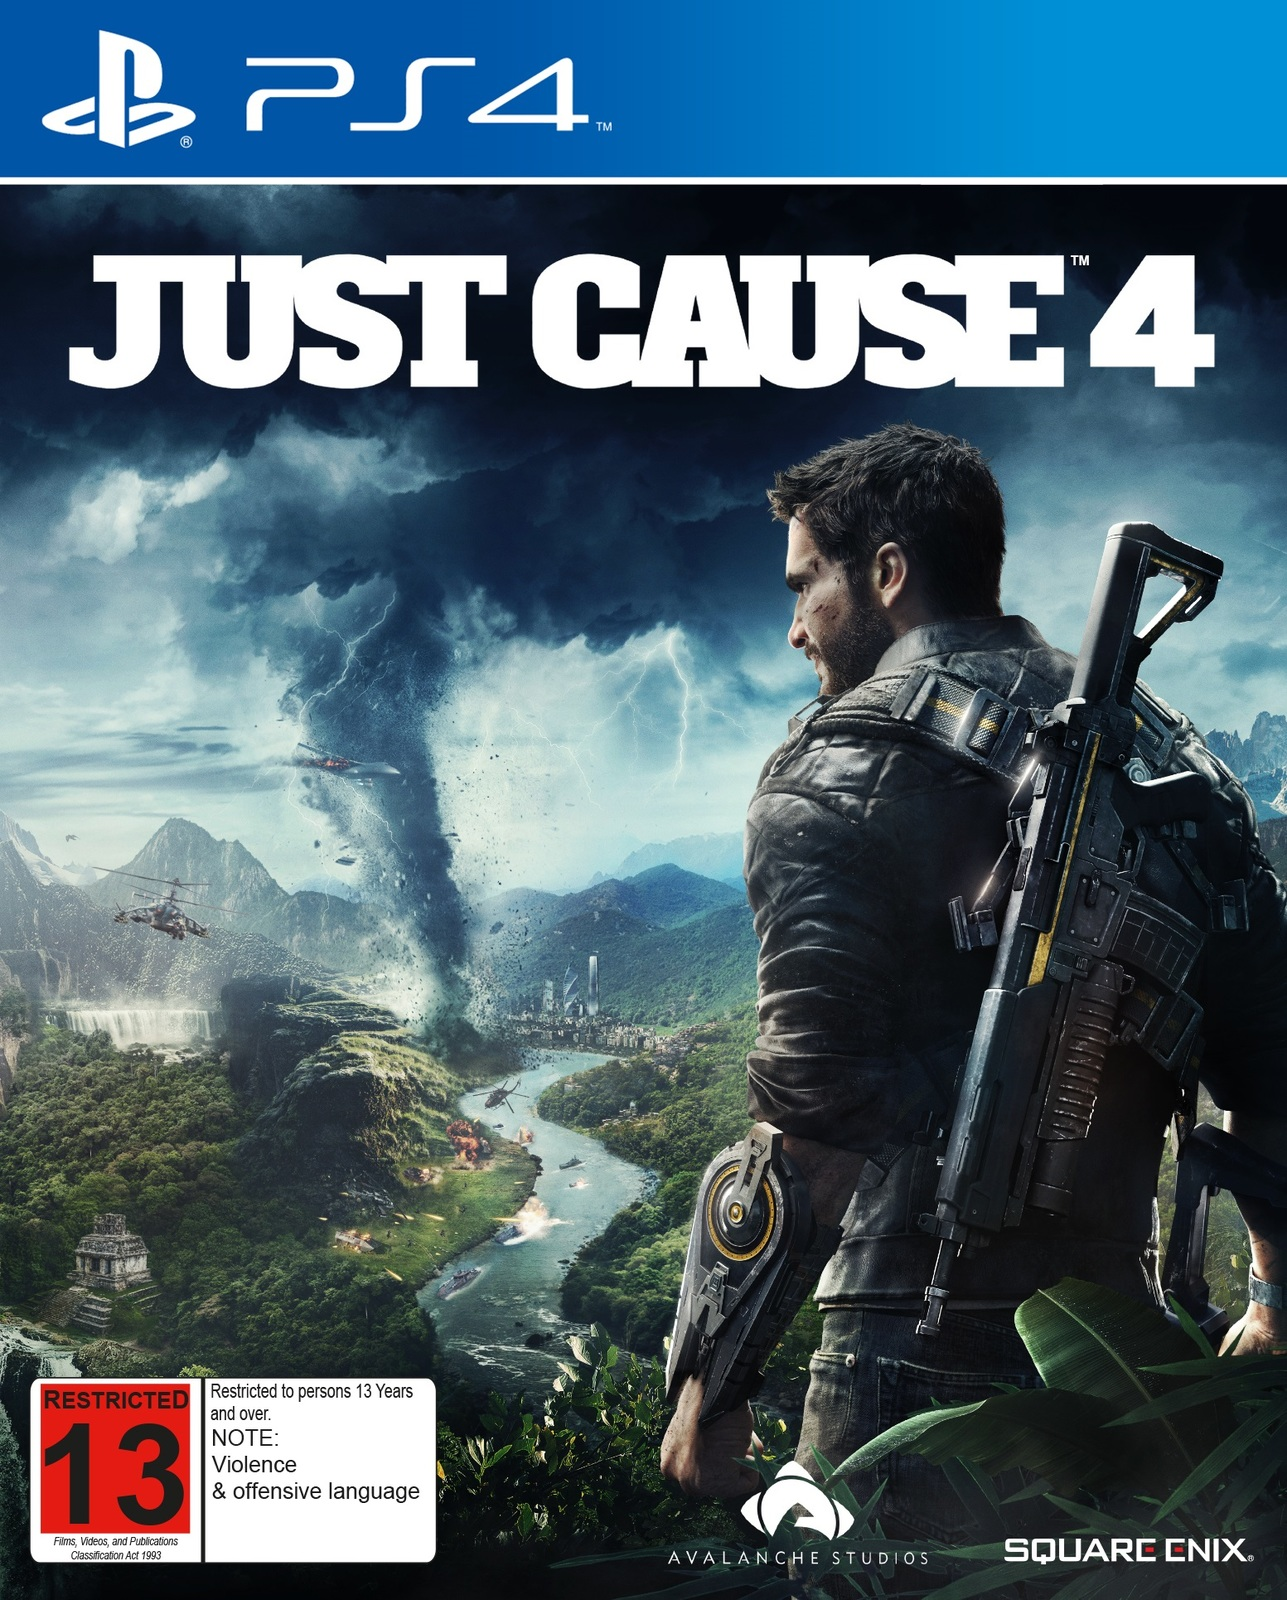 Just Cause 4 [PS4] 5.05 / 6.72 / 7.02 [EUR] (2018) [Русский] (v1.00)